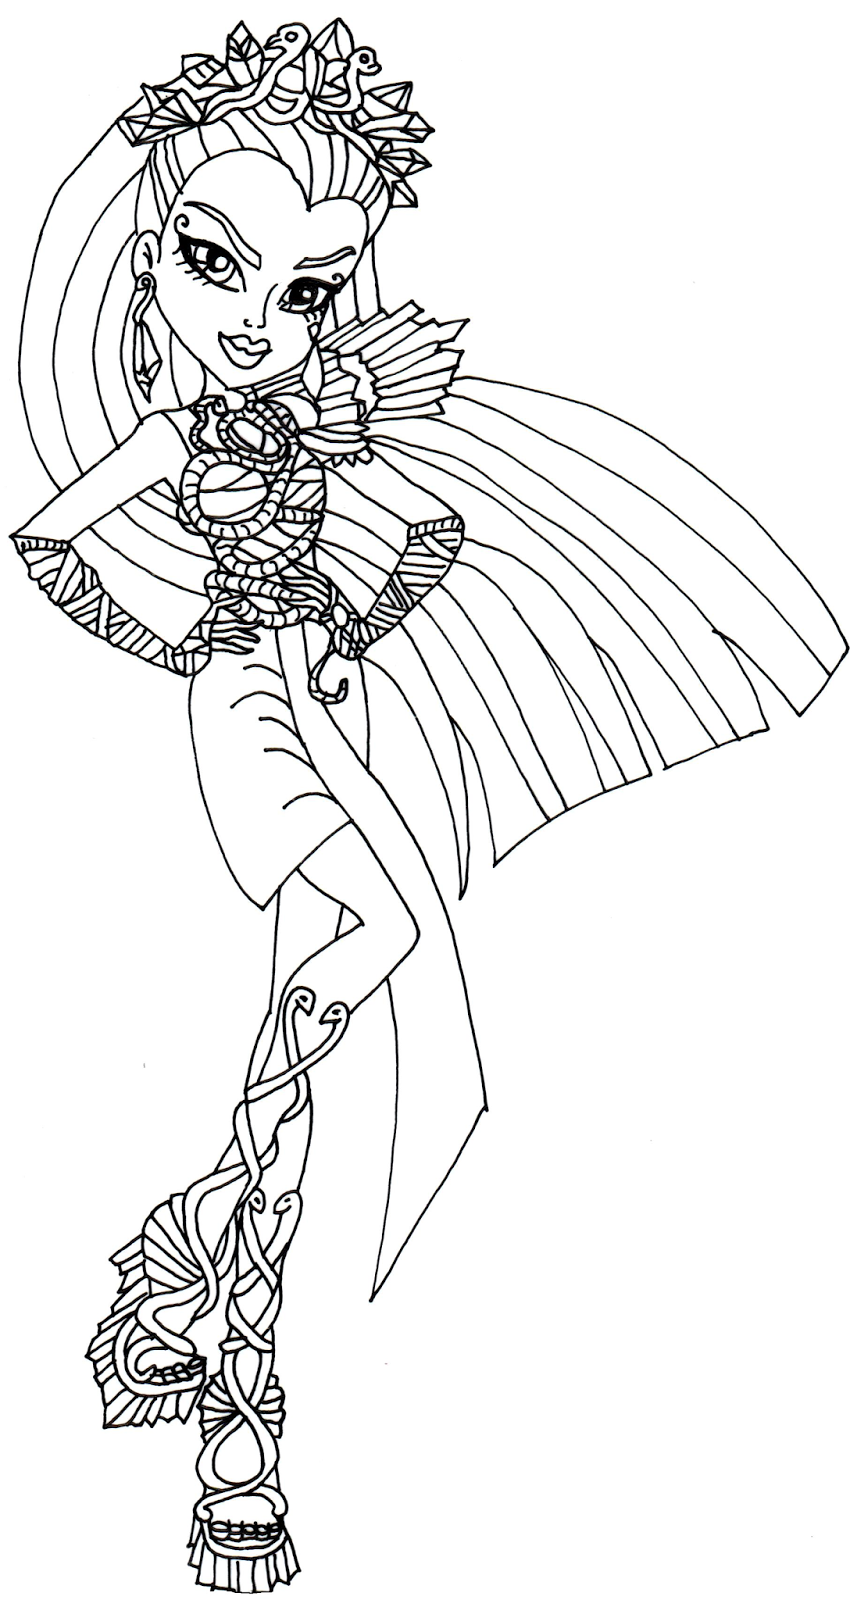 Free printable monster high coloring pages nefera de nile for Monster high free coloring pages